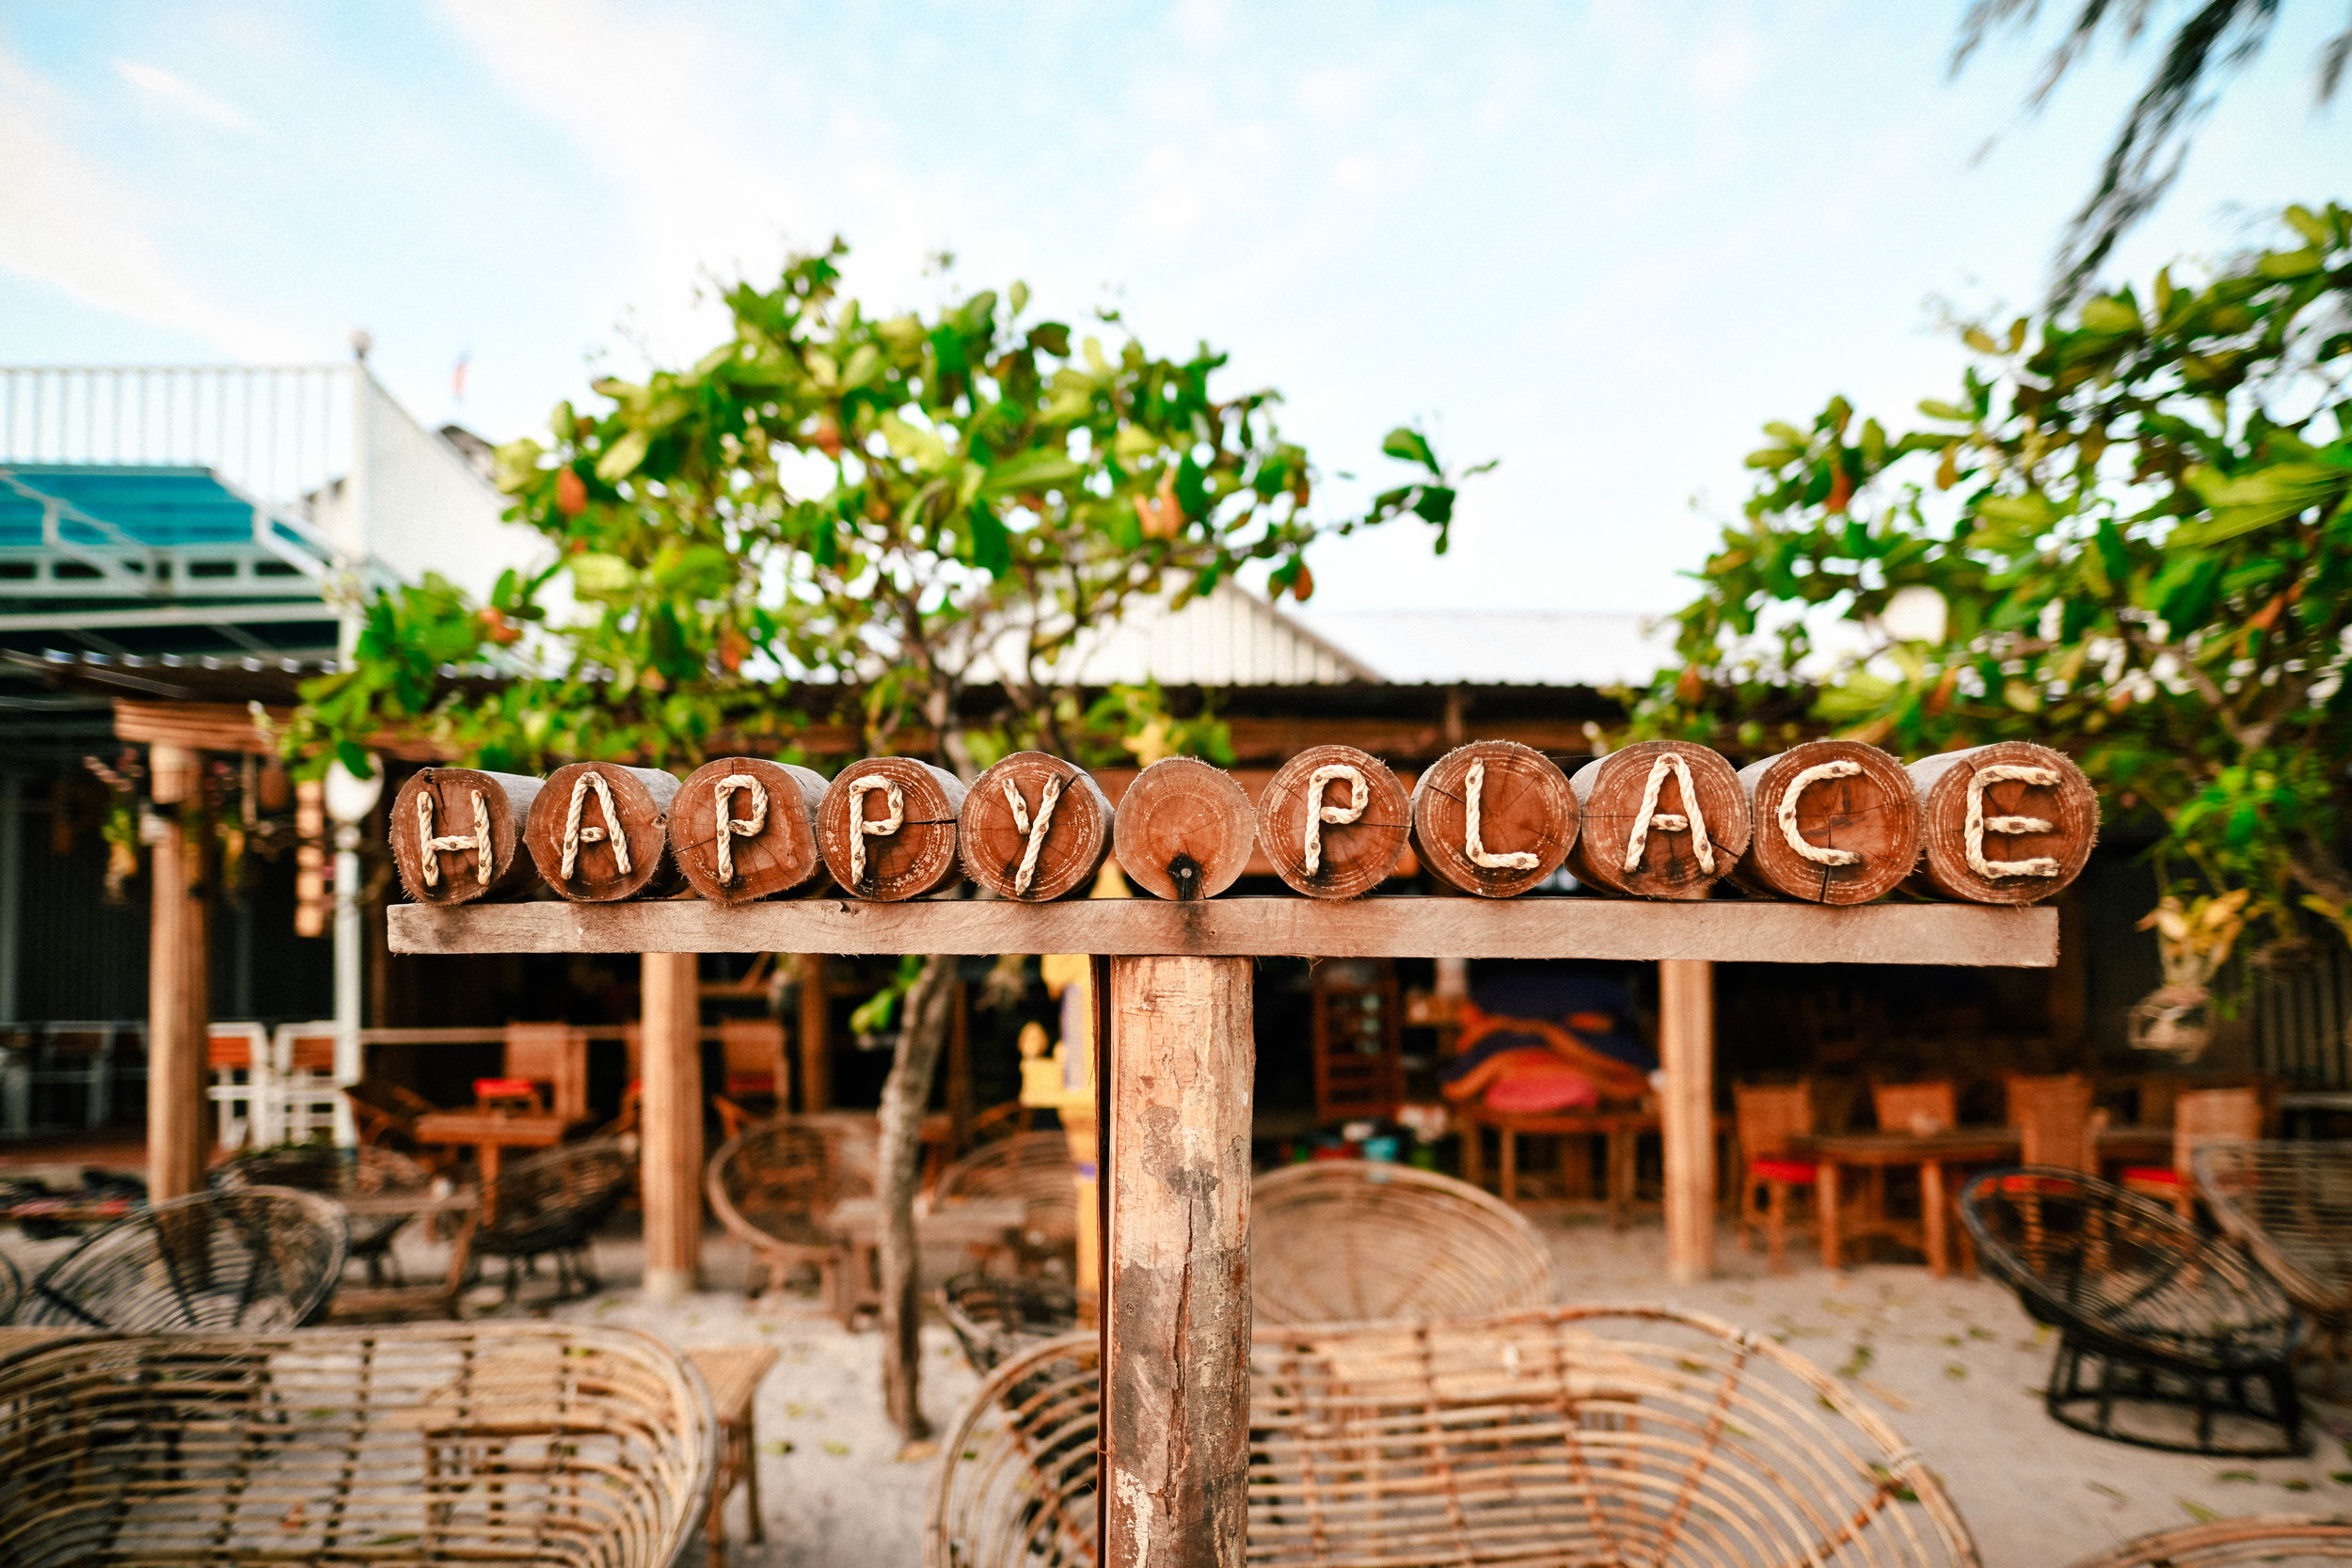 Happy place sign in Cambodia